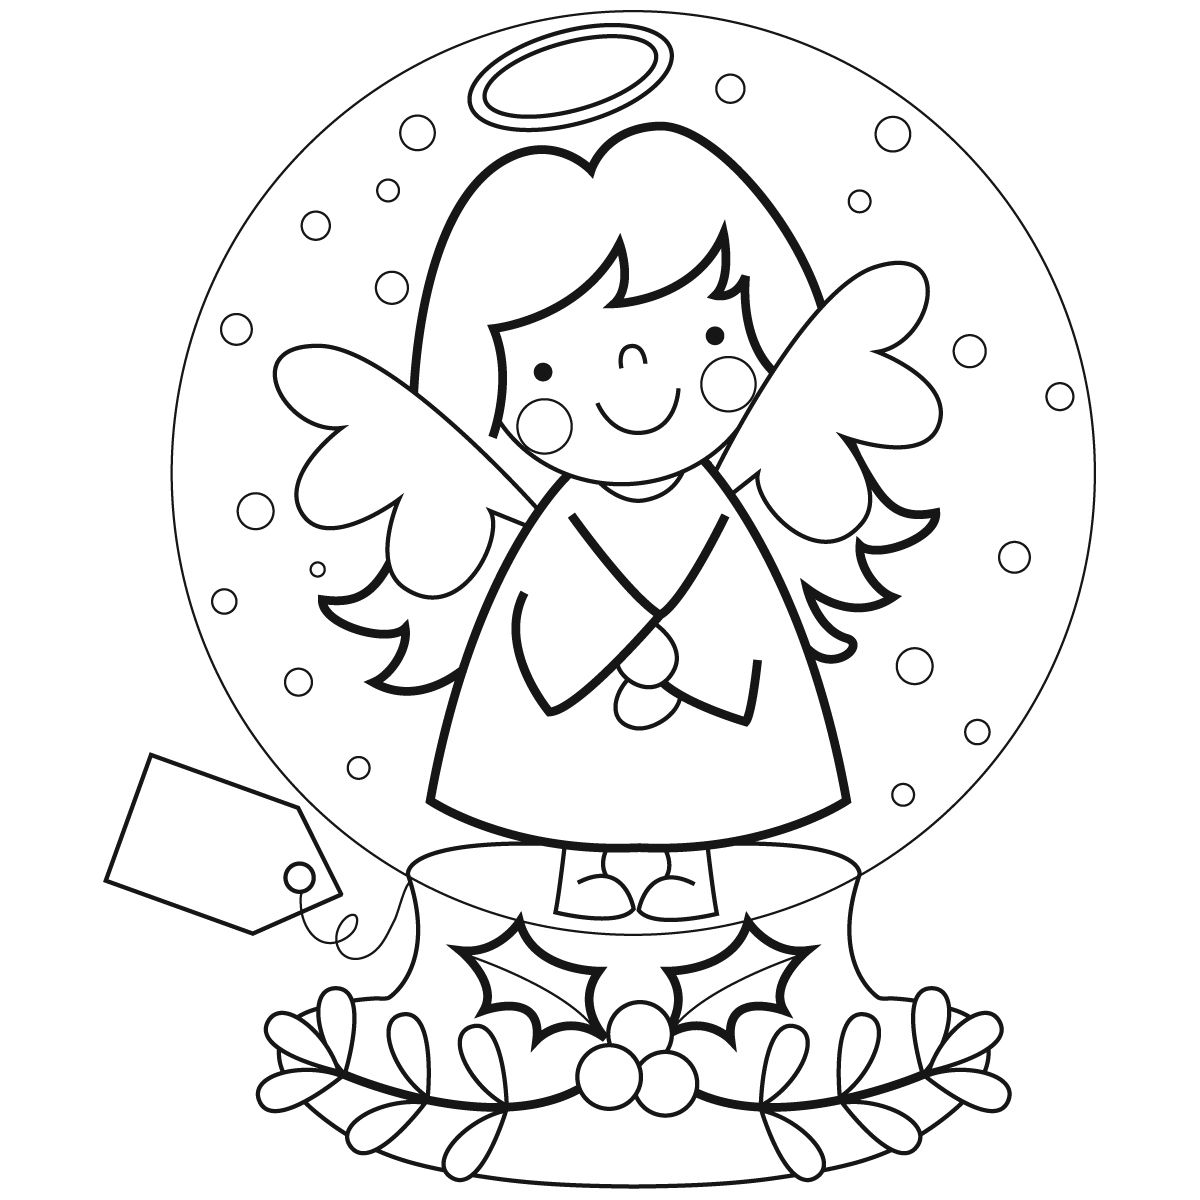 Christmas Globe Coloring Pages With Marisa Straccia Snow Designs Tags Pinterest